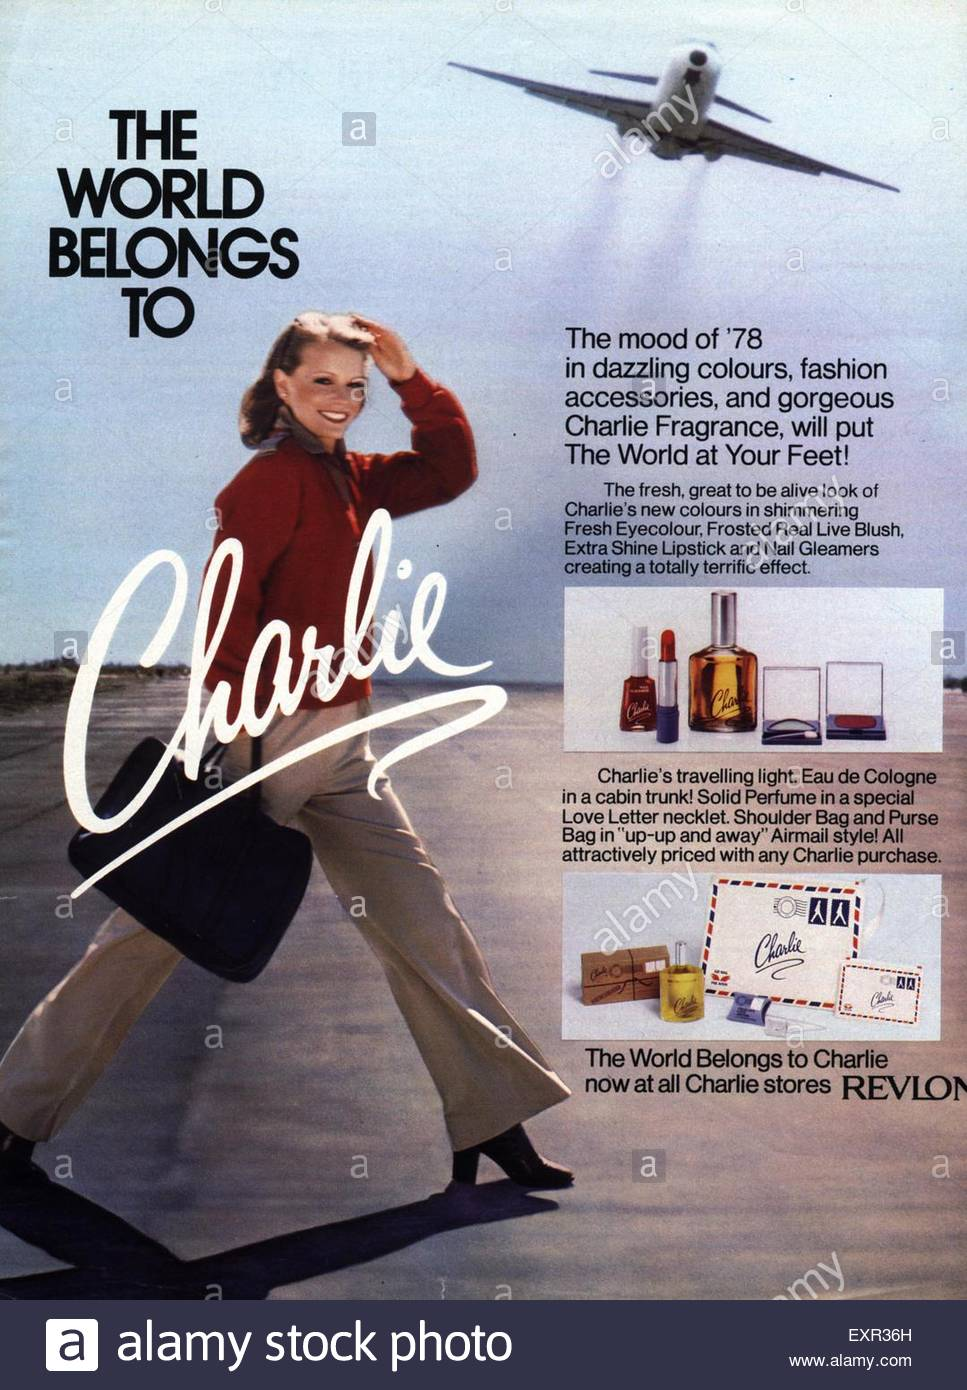 1970s-uk-charlie-revlon-magazine-advert-EXR36H